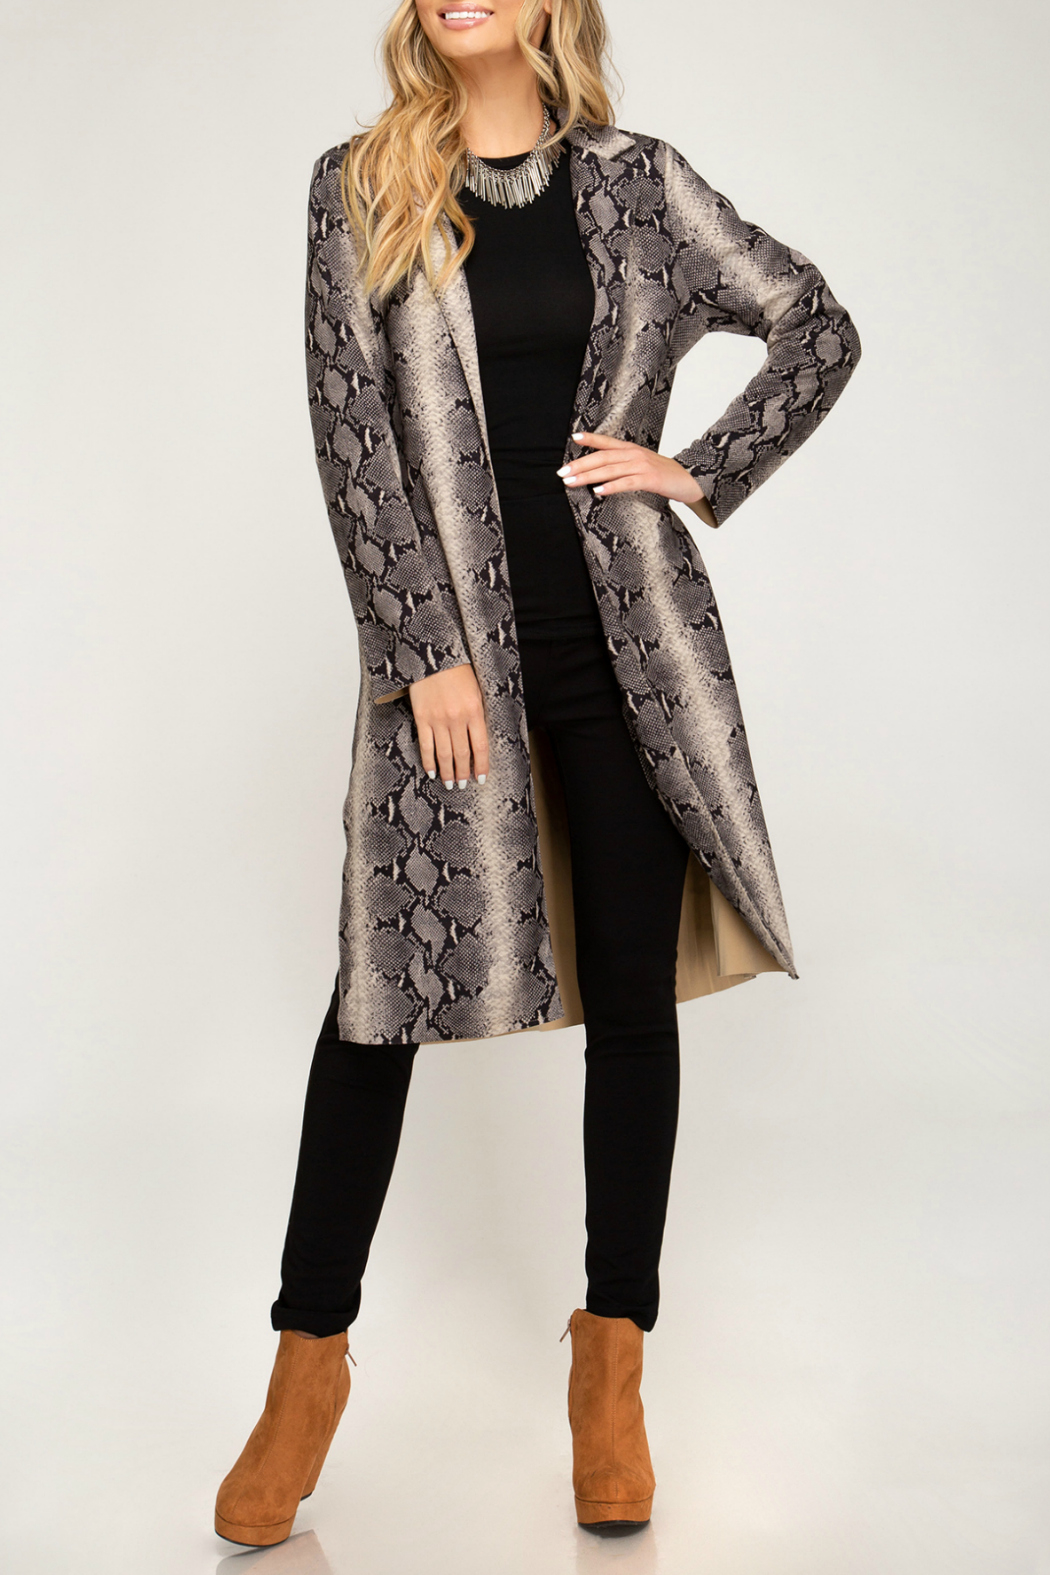 She + Sky Animal Print Suede Duster - Side Cropped Image